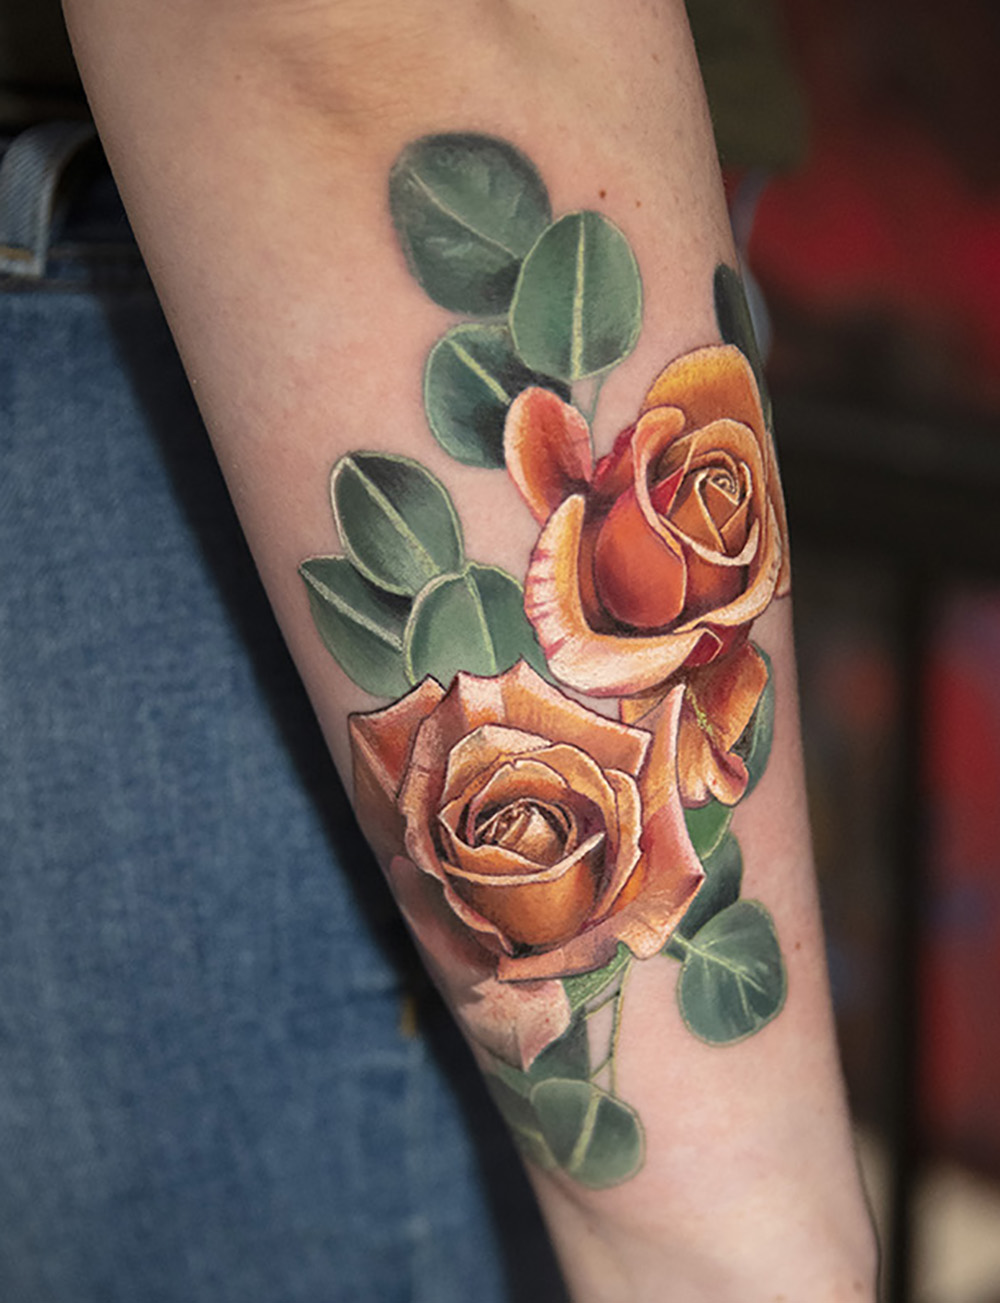 orange roses tattoo by Mikhail Andersson